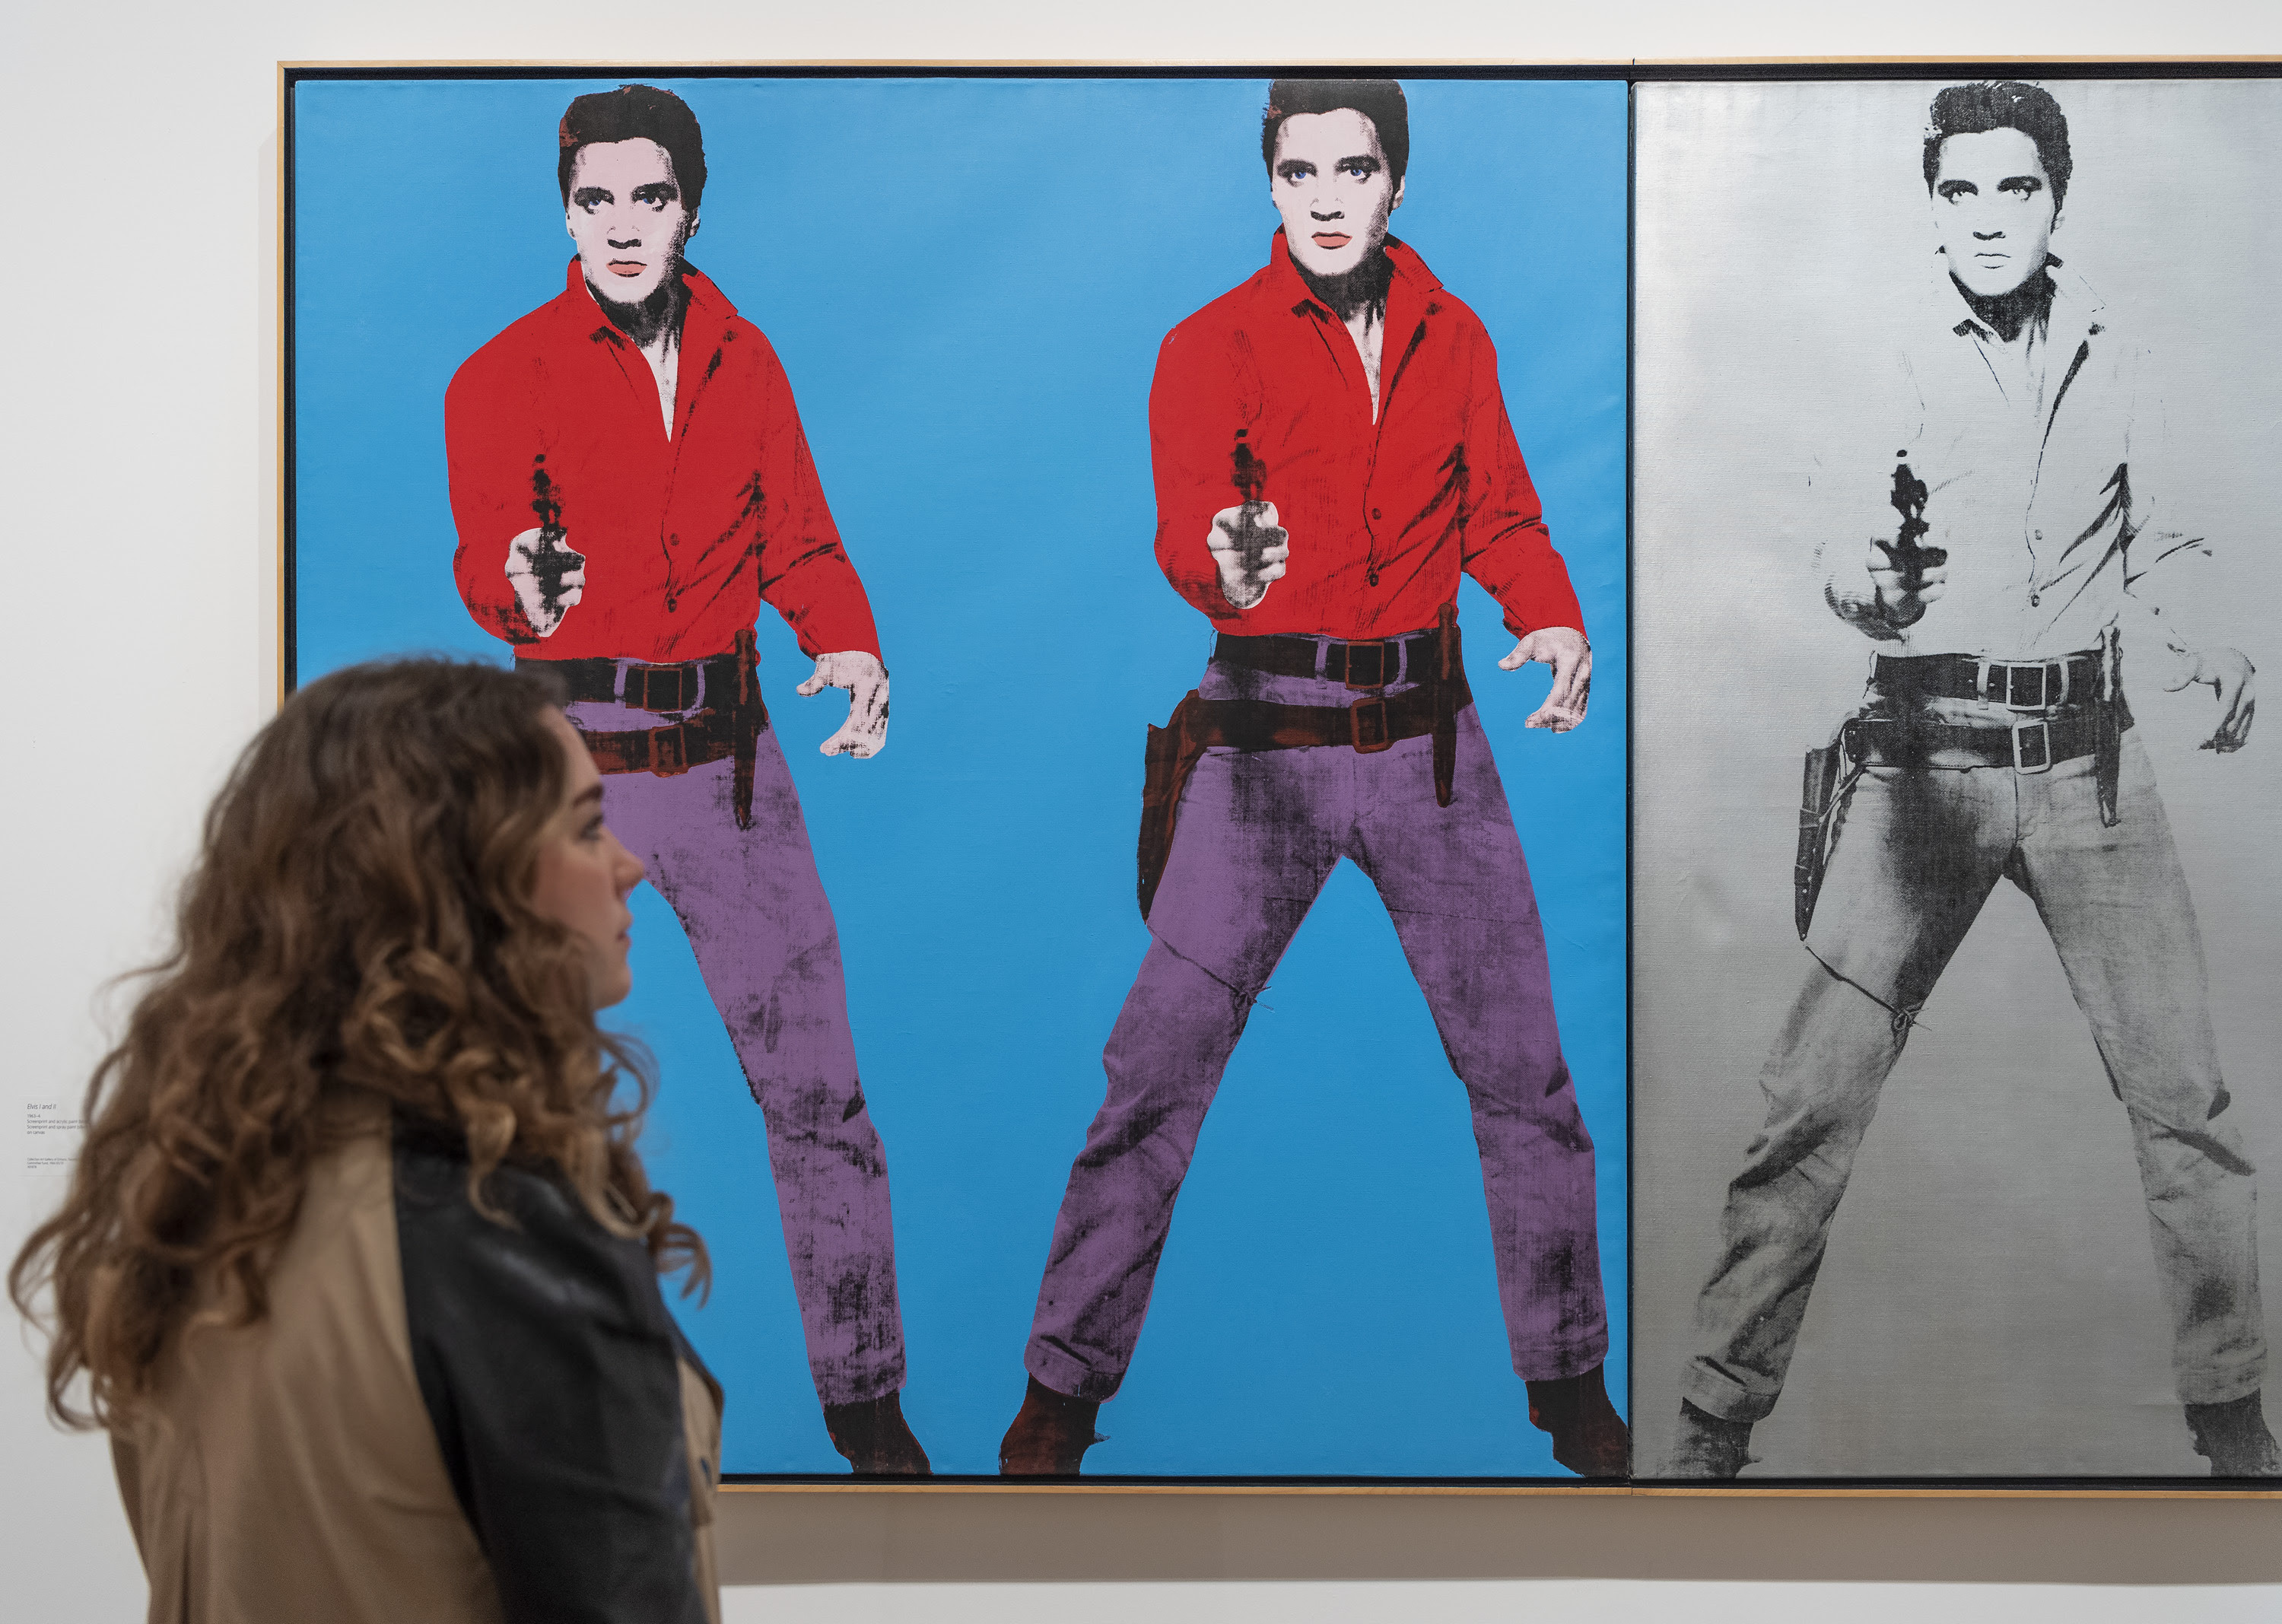 See the Andy Warhol Tate Modern exhibition via virtual tour